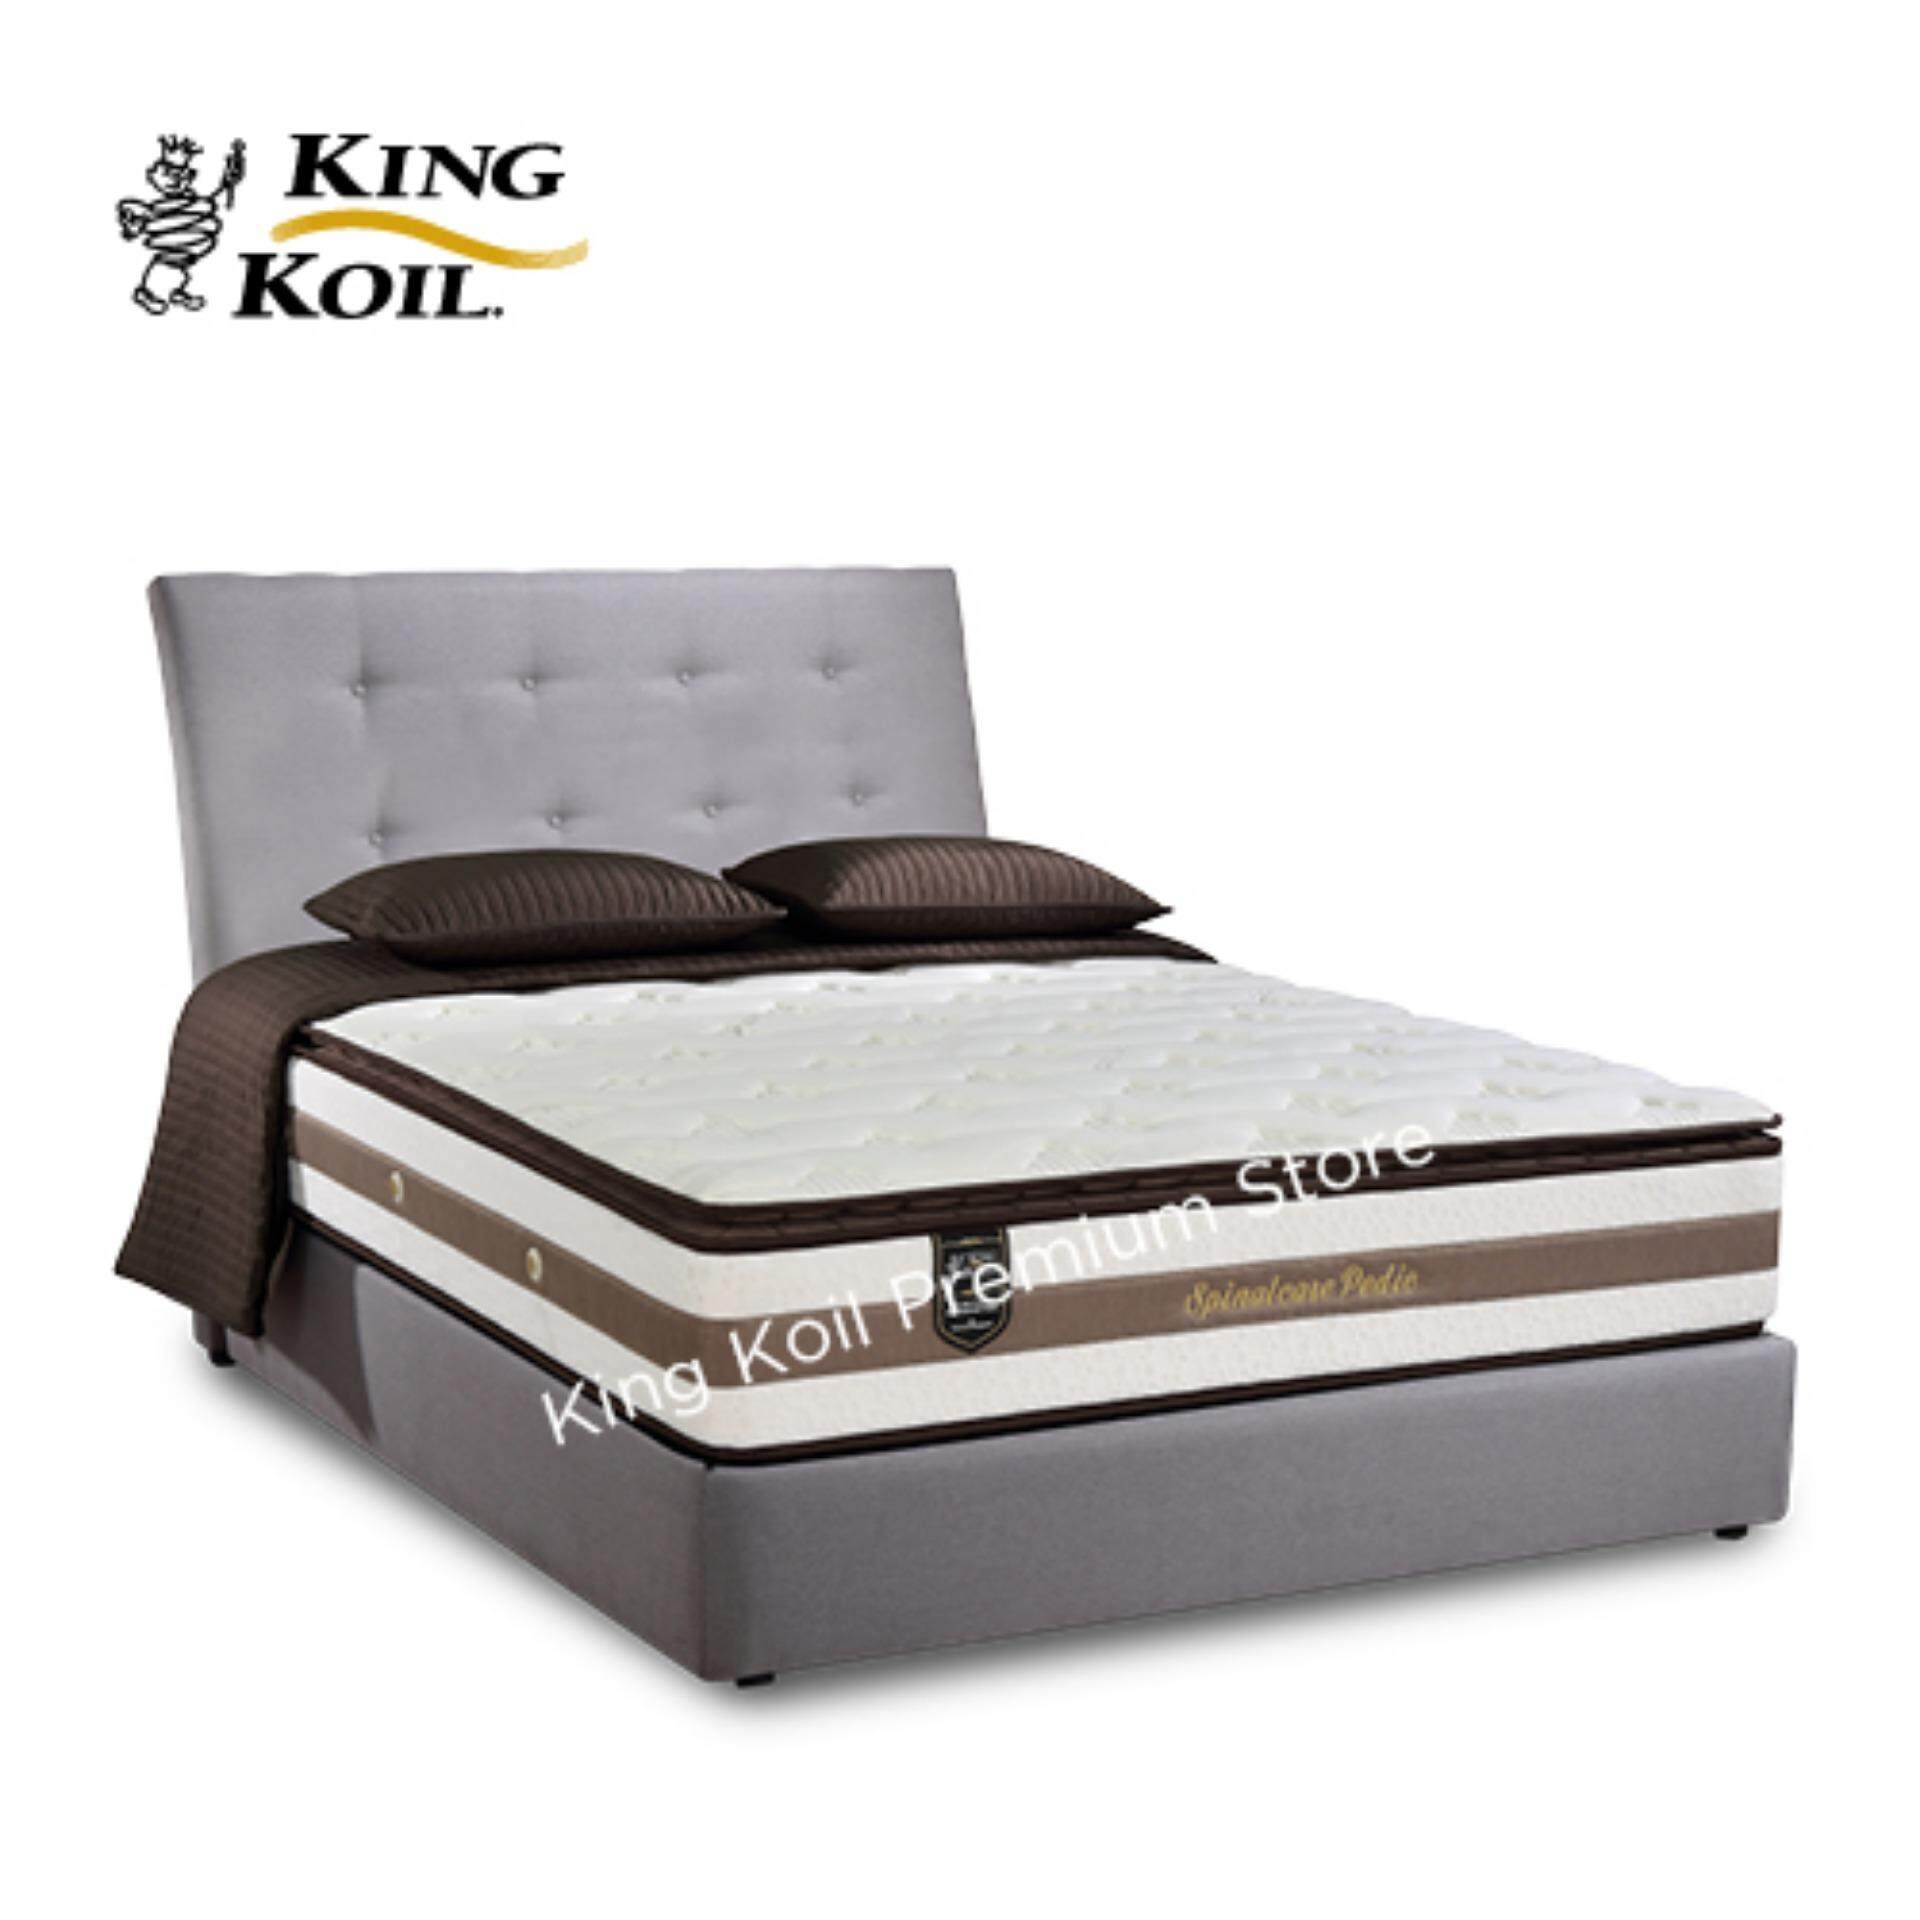 King Koil Buy King Koil At Best Price In Malaysia Www